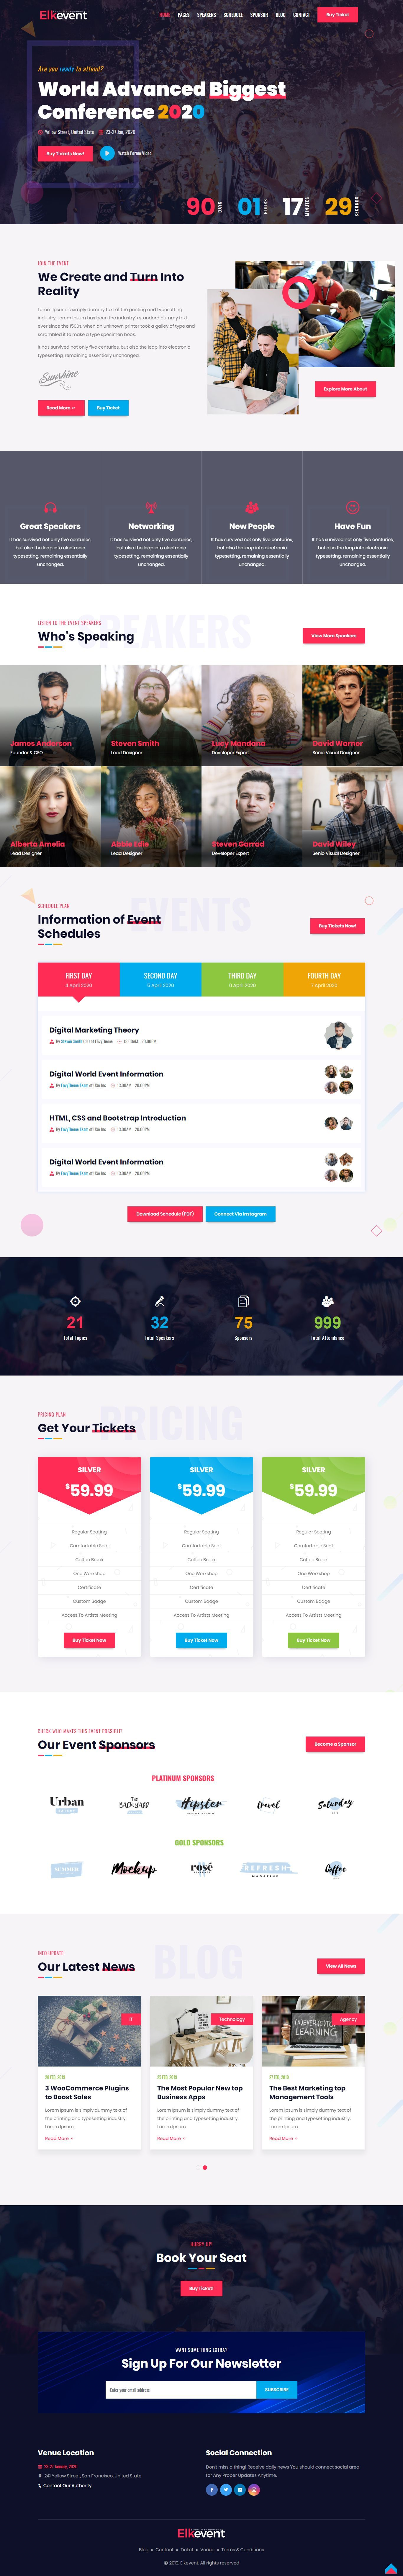 Conference Event And Meetup Html Website Template V 2020 G Dizajn